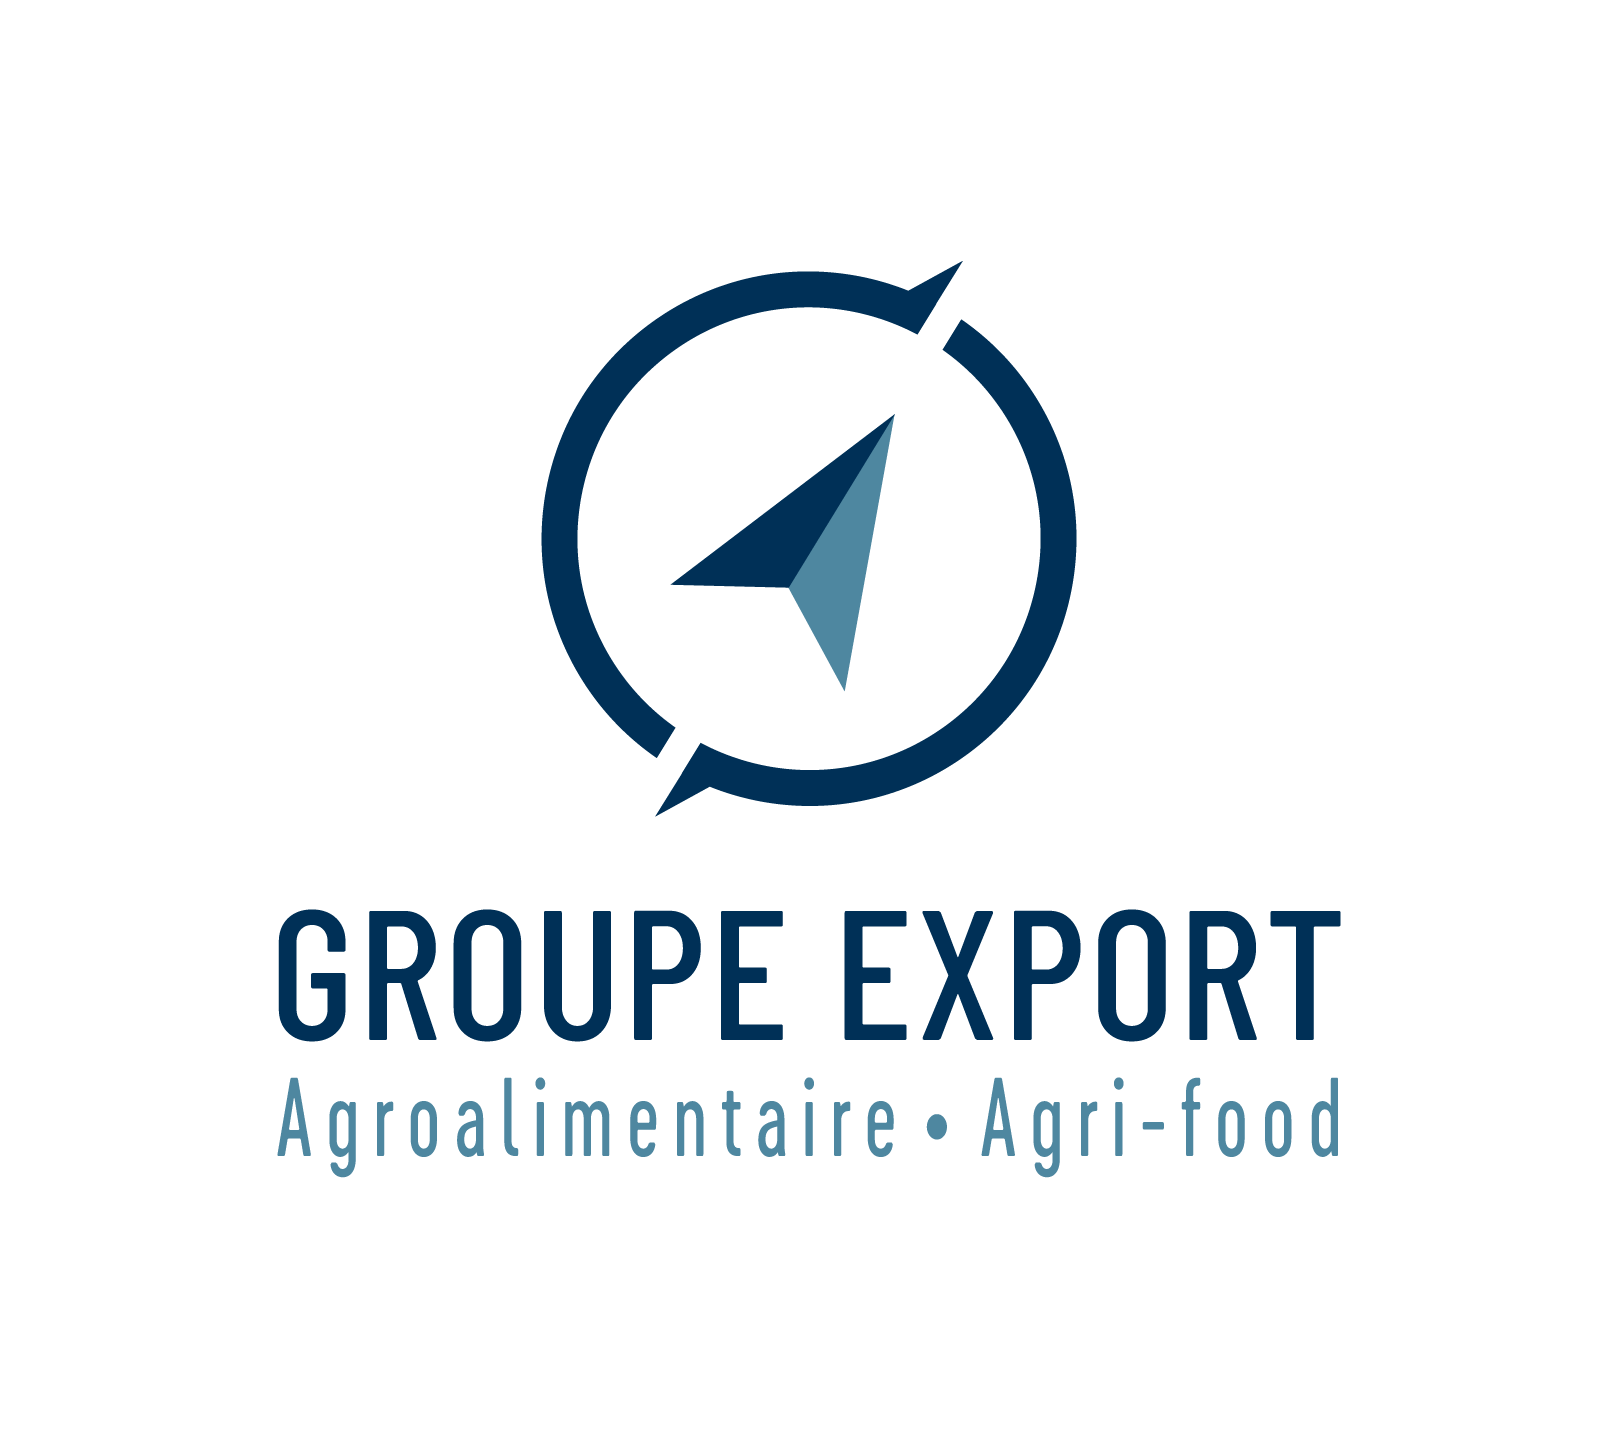 The financial sector joins forces with the Group Export to support agri-food exports